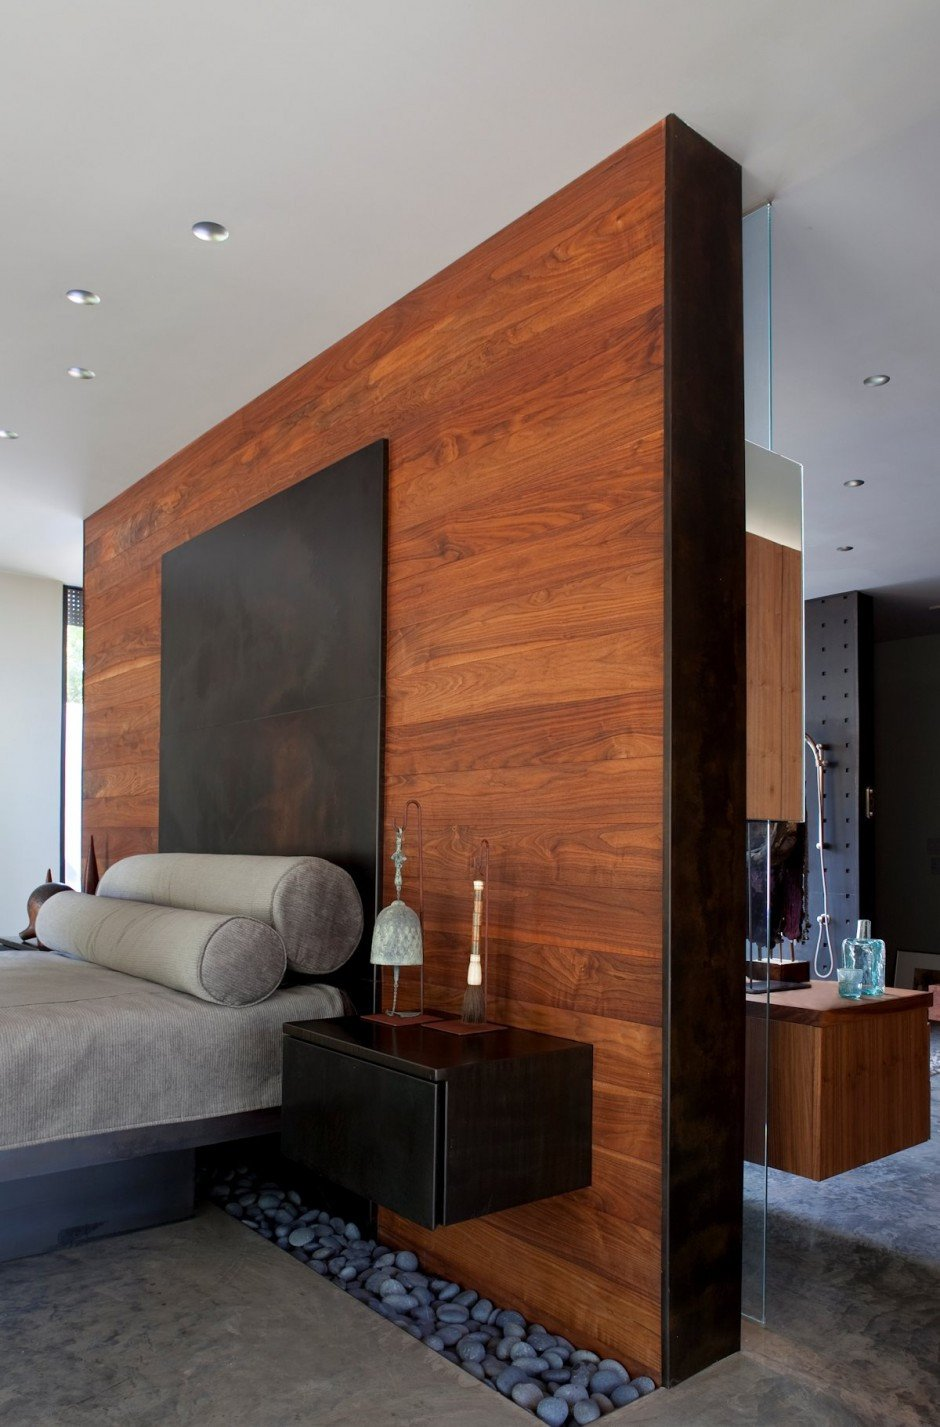 Wall Decor for Master Bedrooms Lovely 50 Master Bedroom Ideas that Go Beyond the Basics